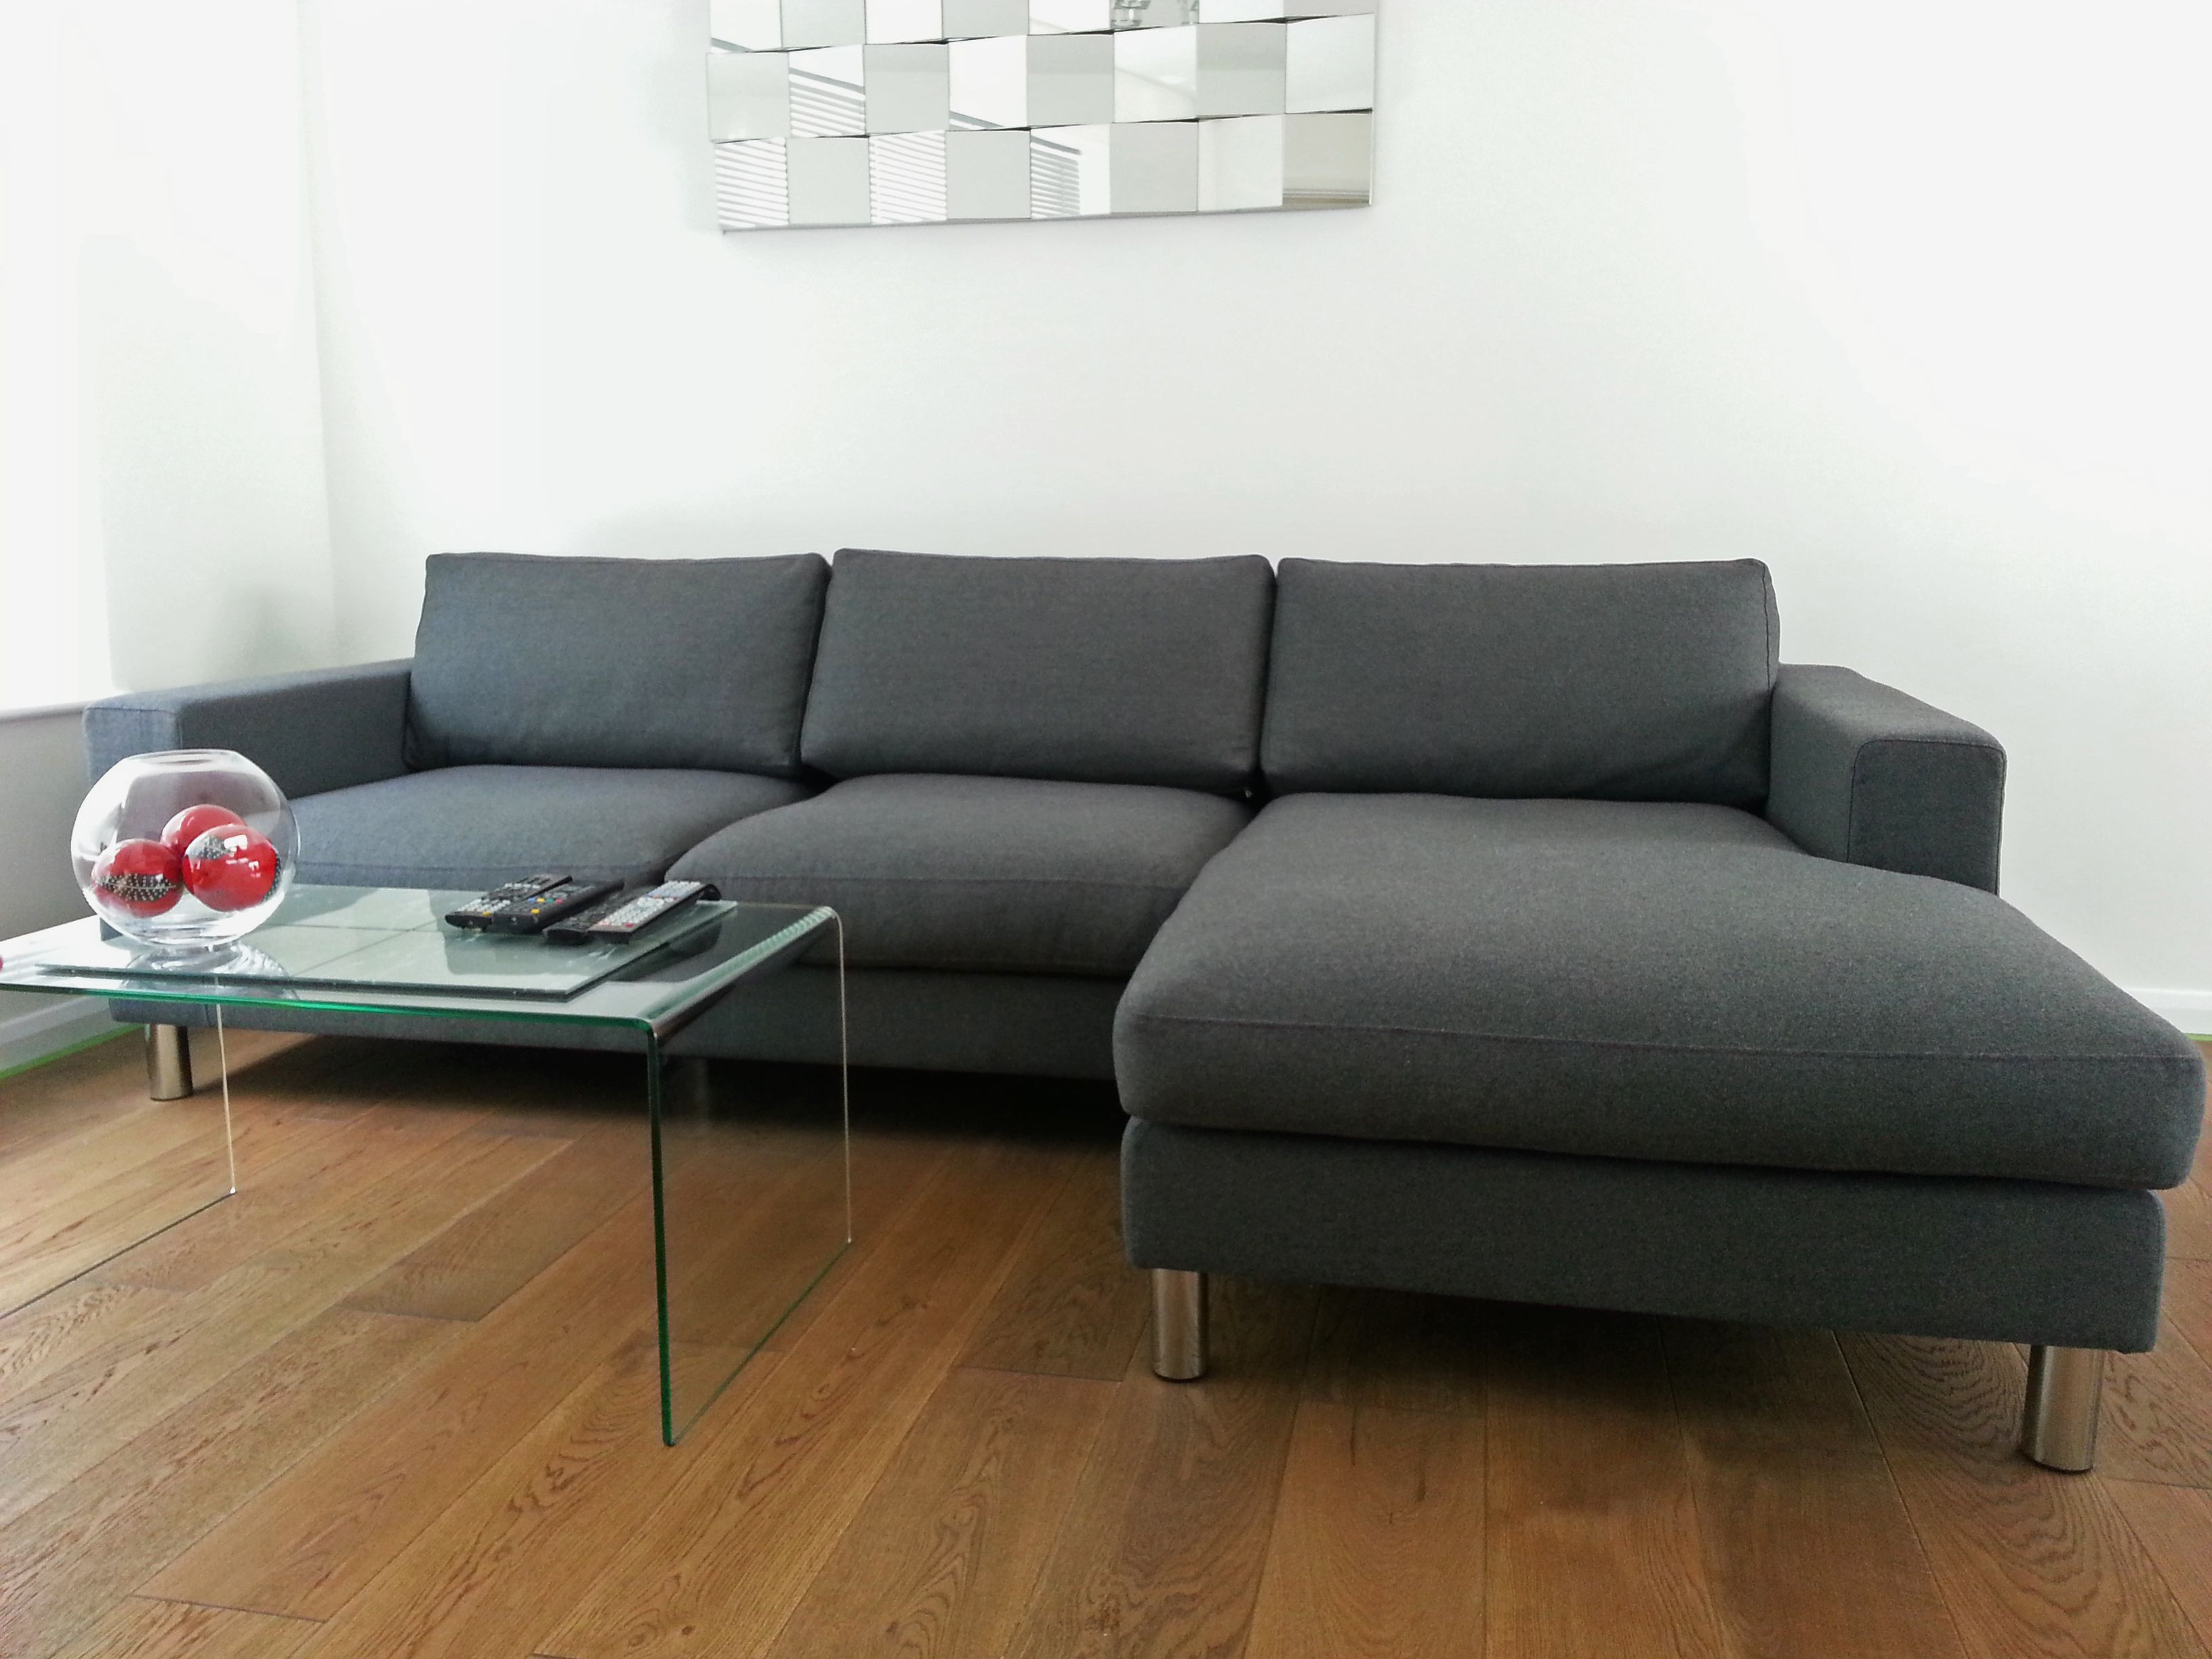 Biki Modern Corner Sofa Photo Sent by Aggy From Bristol You Can. Old Living Room Furniture. Ashley Furniture Living Room Antique Living Room Set. Putting Some Efforts in Your Classic Living Room Can Make You